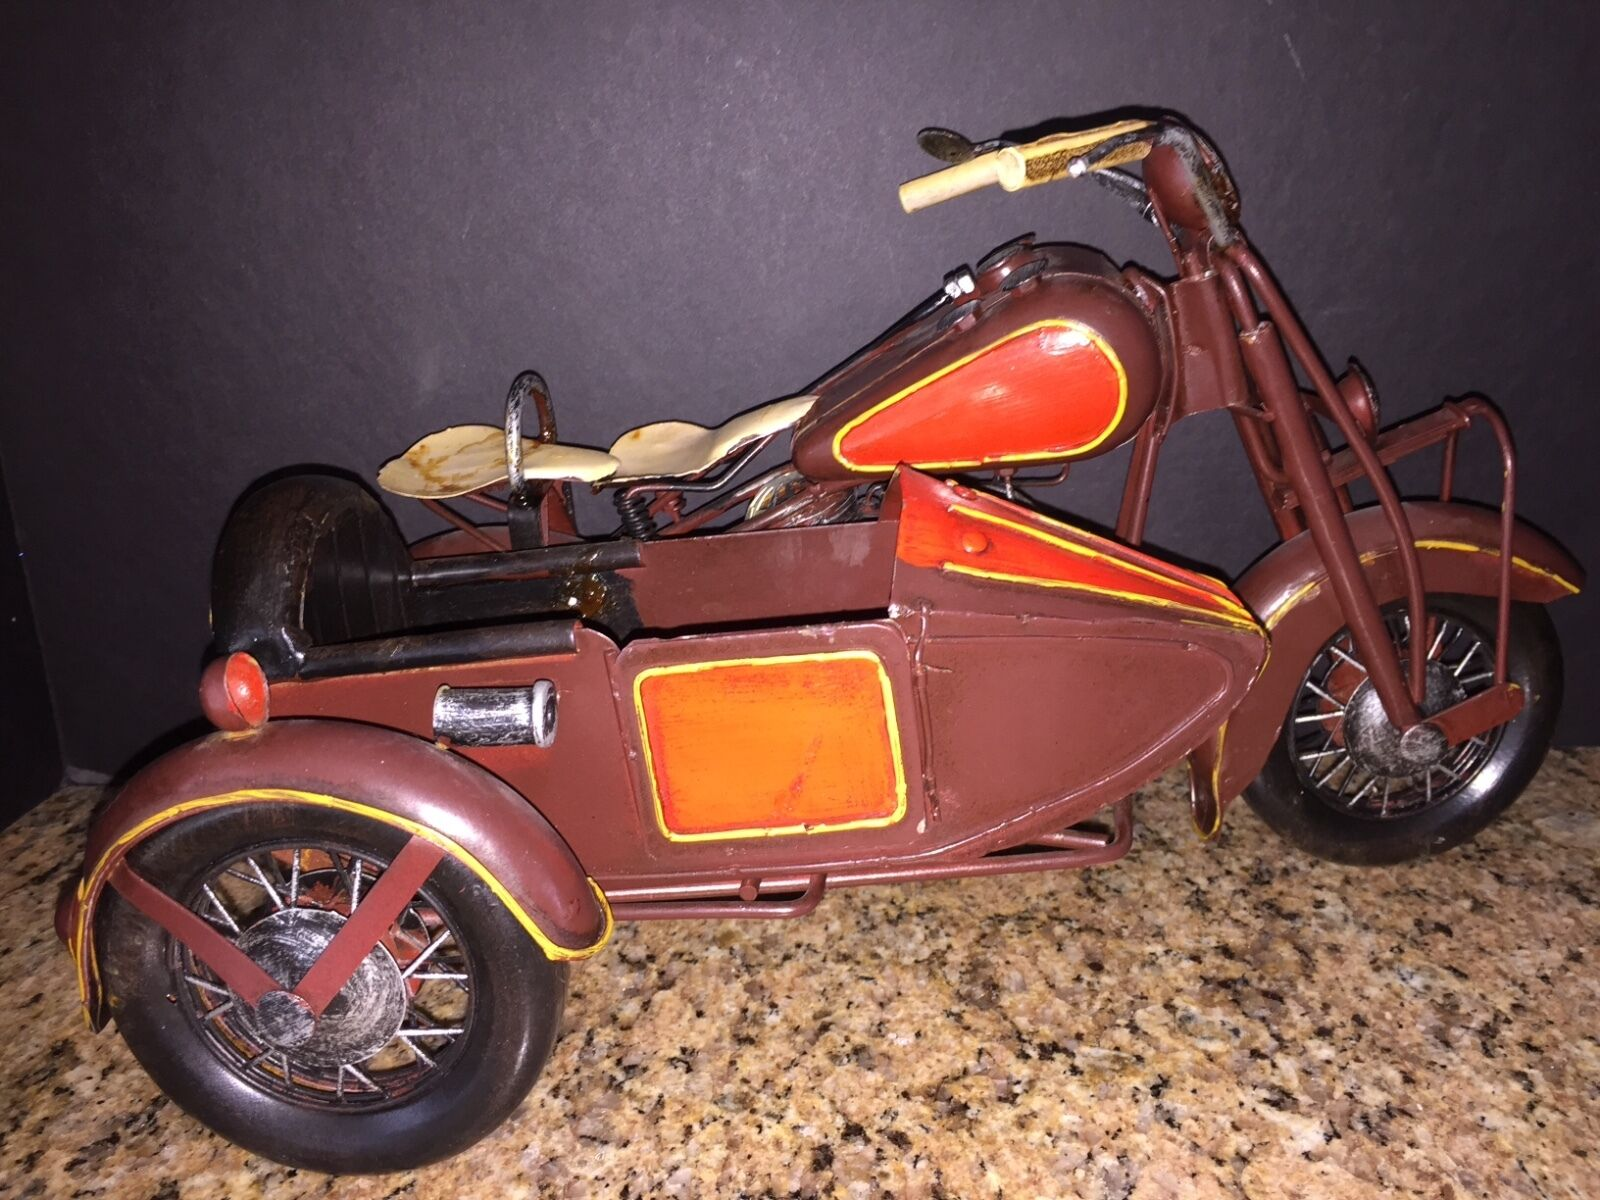 1933 HARLEY DAVIDSON MOTORCYCLE WITH SIDE CAR DIECAST METAL RARE 7.5  x 15